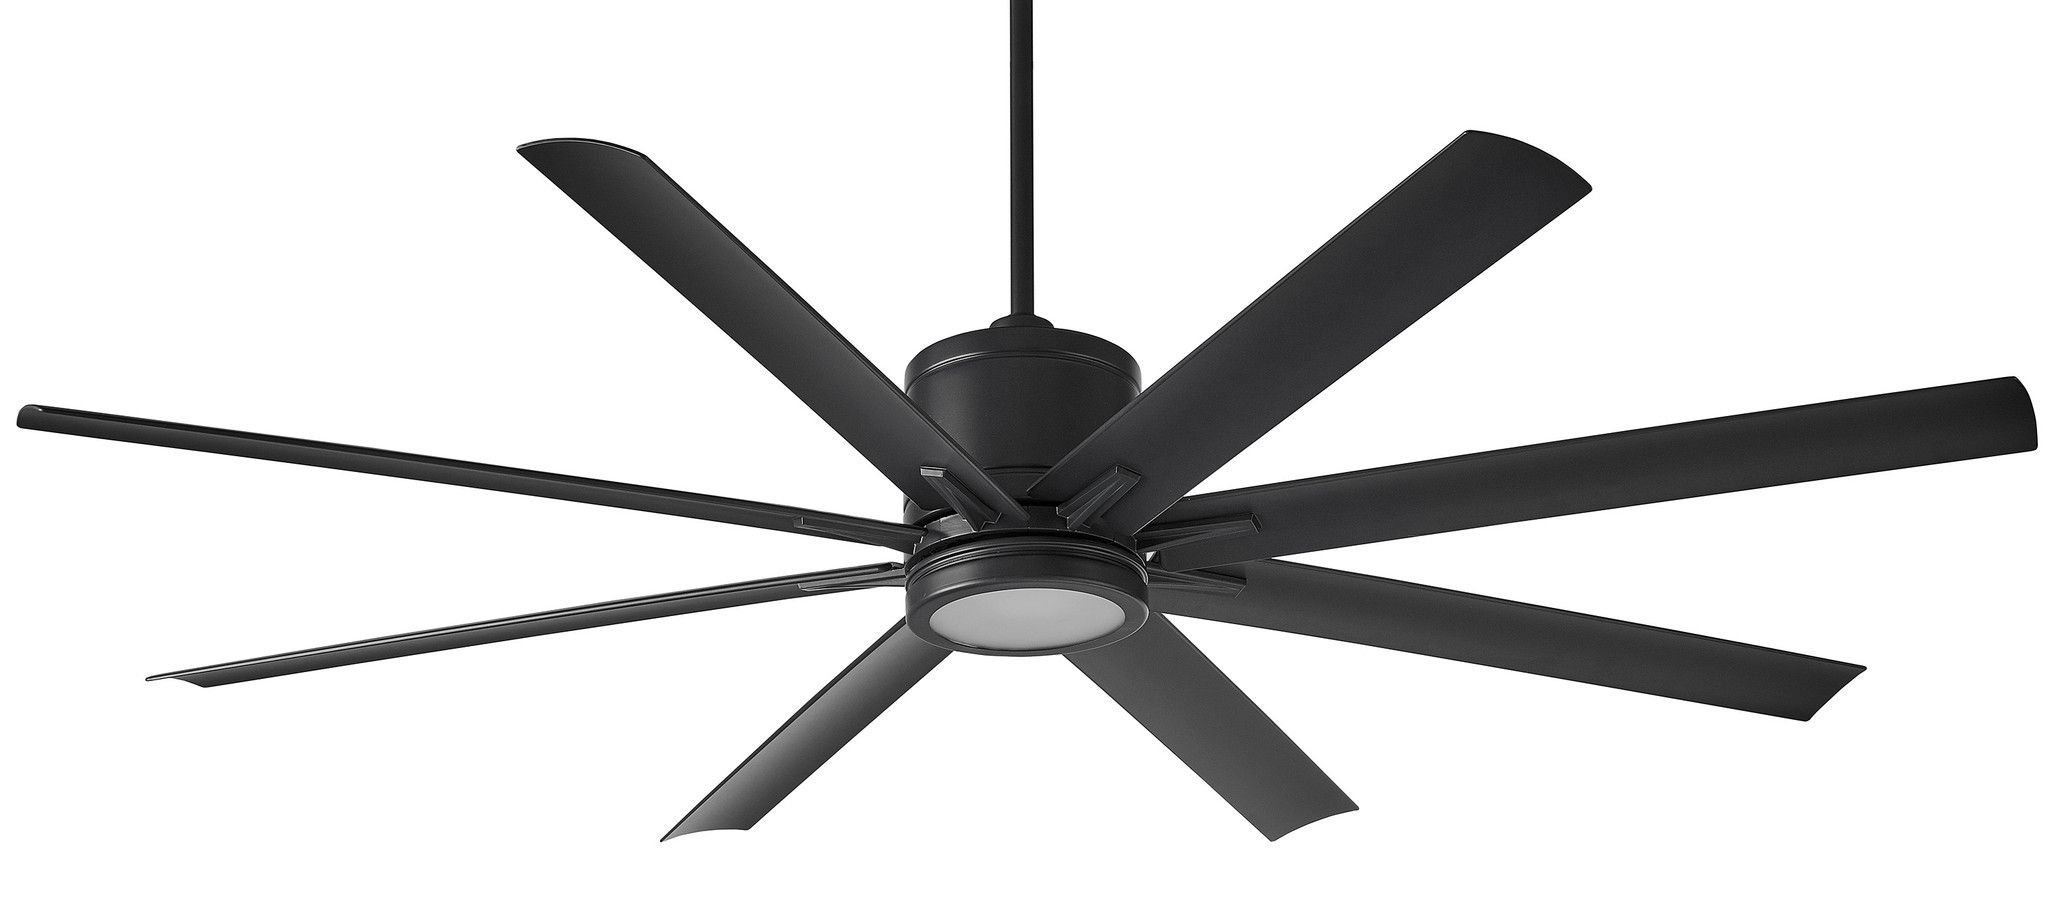 Create An Aesthetic Statement With The Vantage Ceiling Fans Sleek And Simple Design Featuring Eight